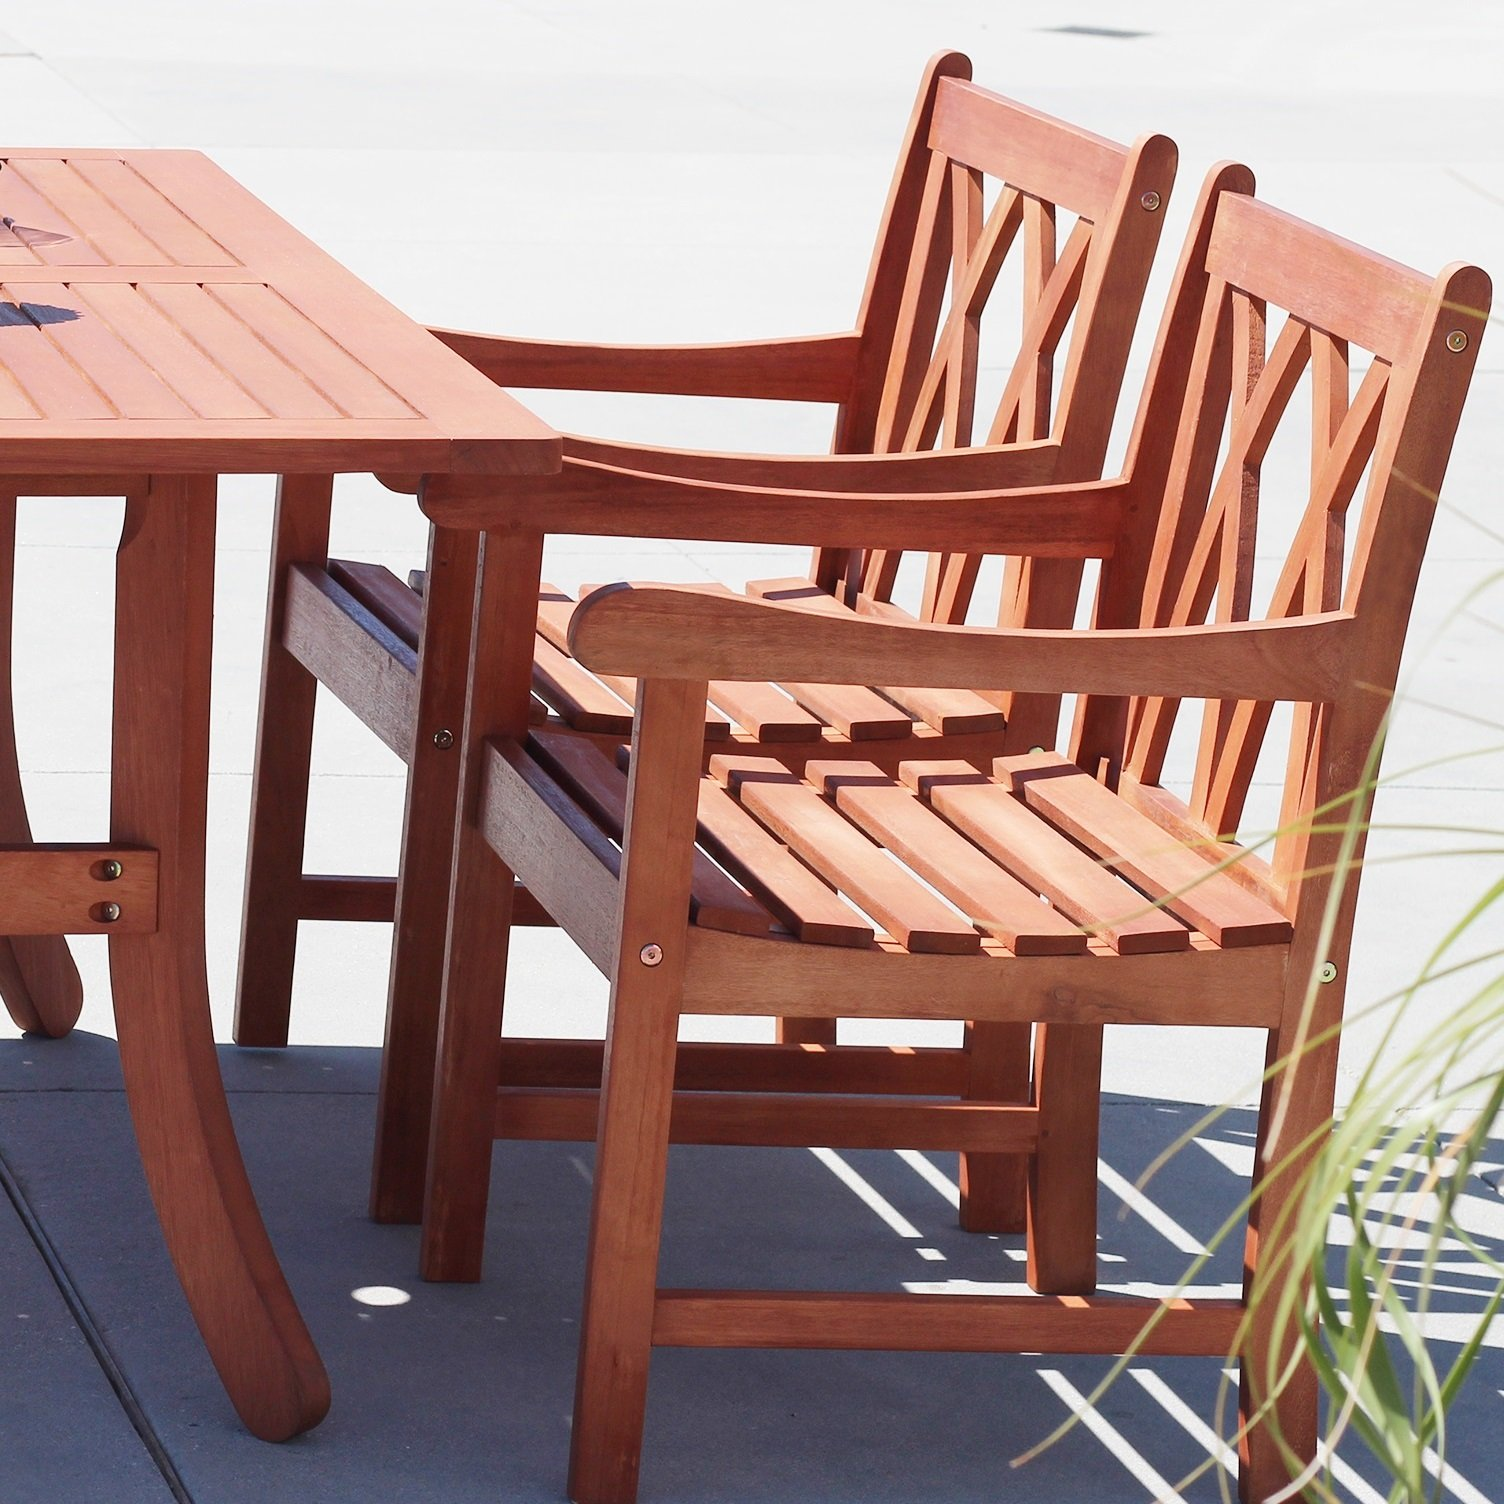 Vifah V1633 Malibu Outdoor Furniture by Vifah (Image #3)